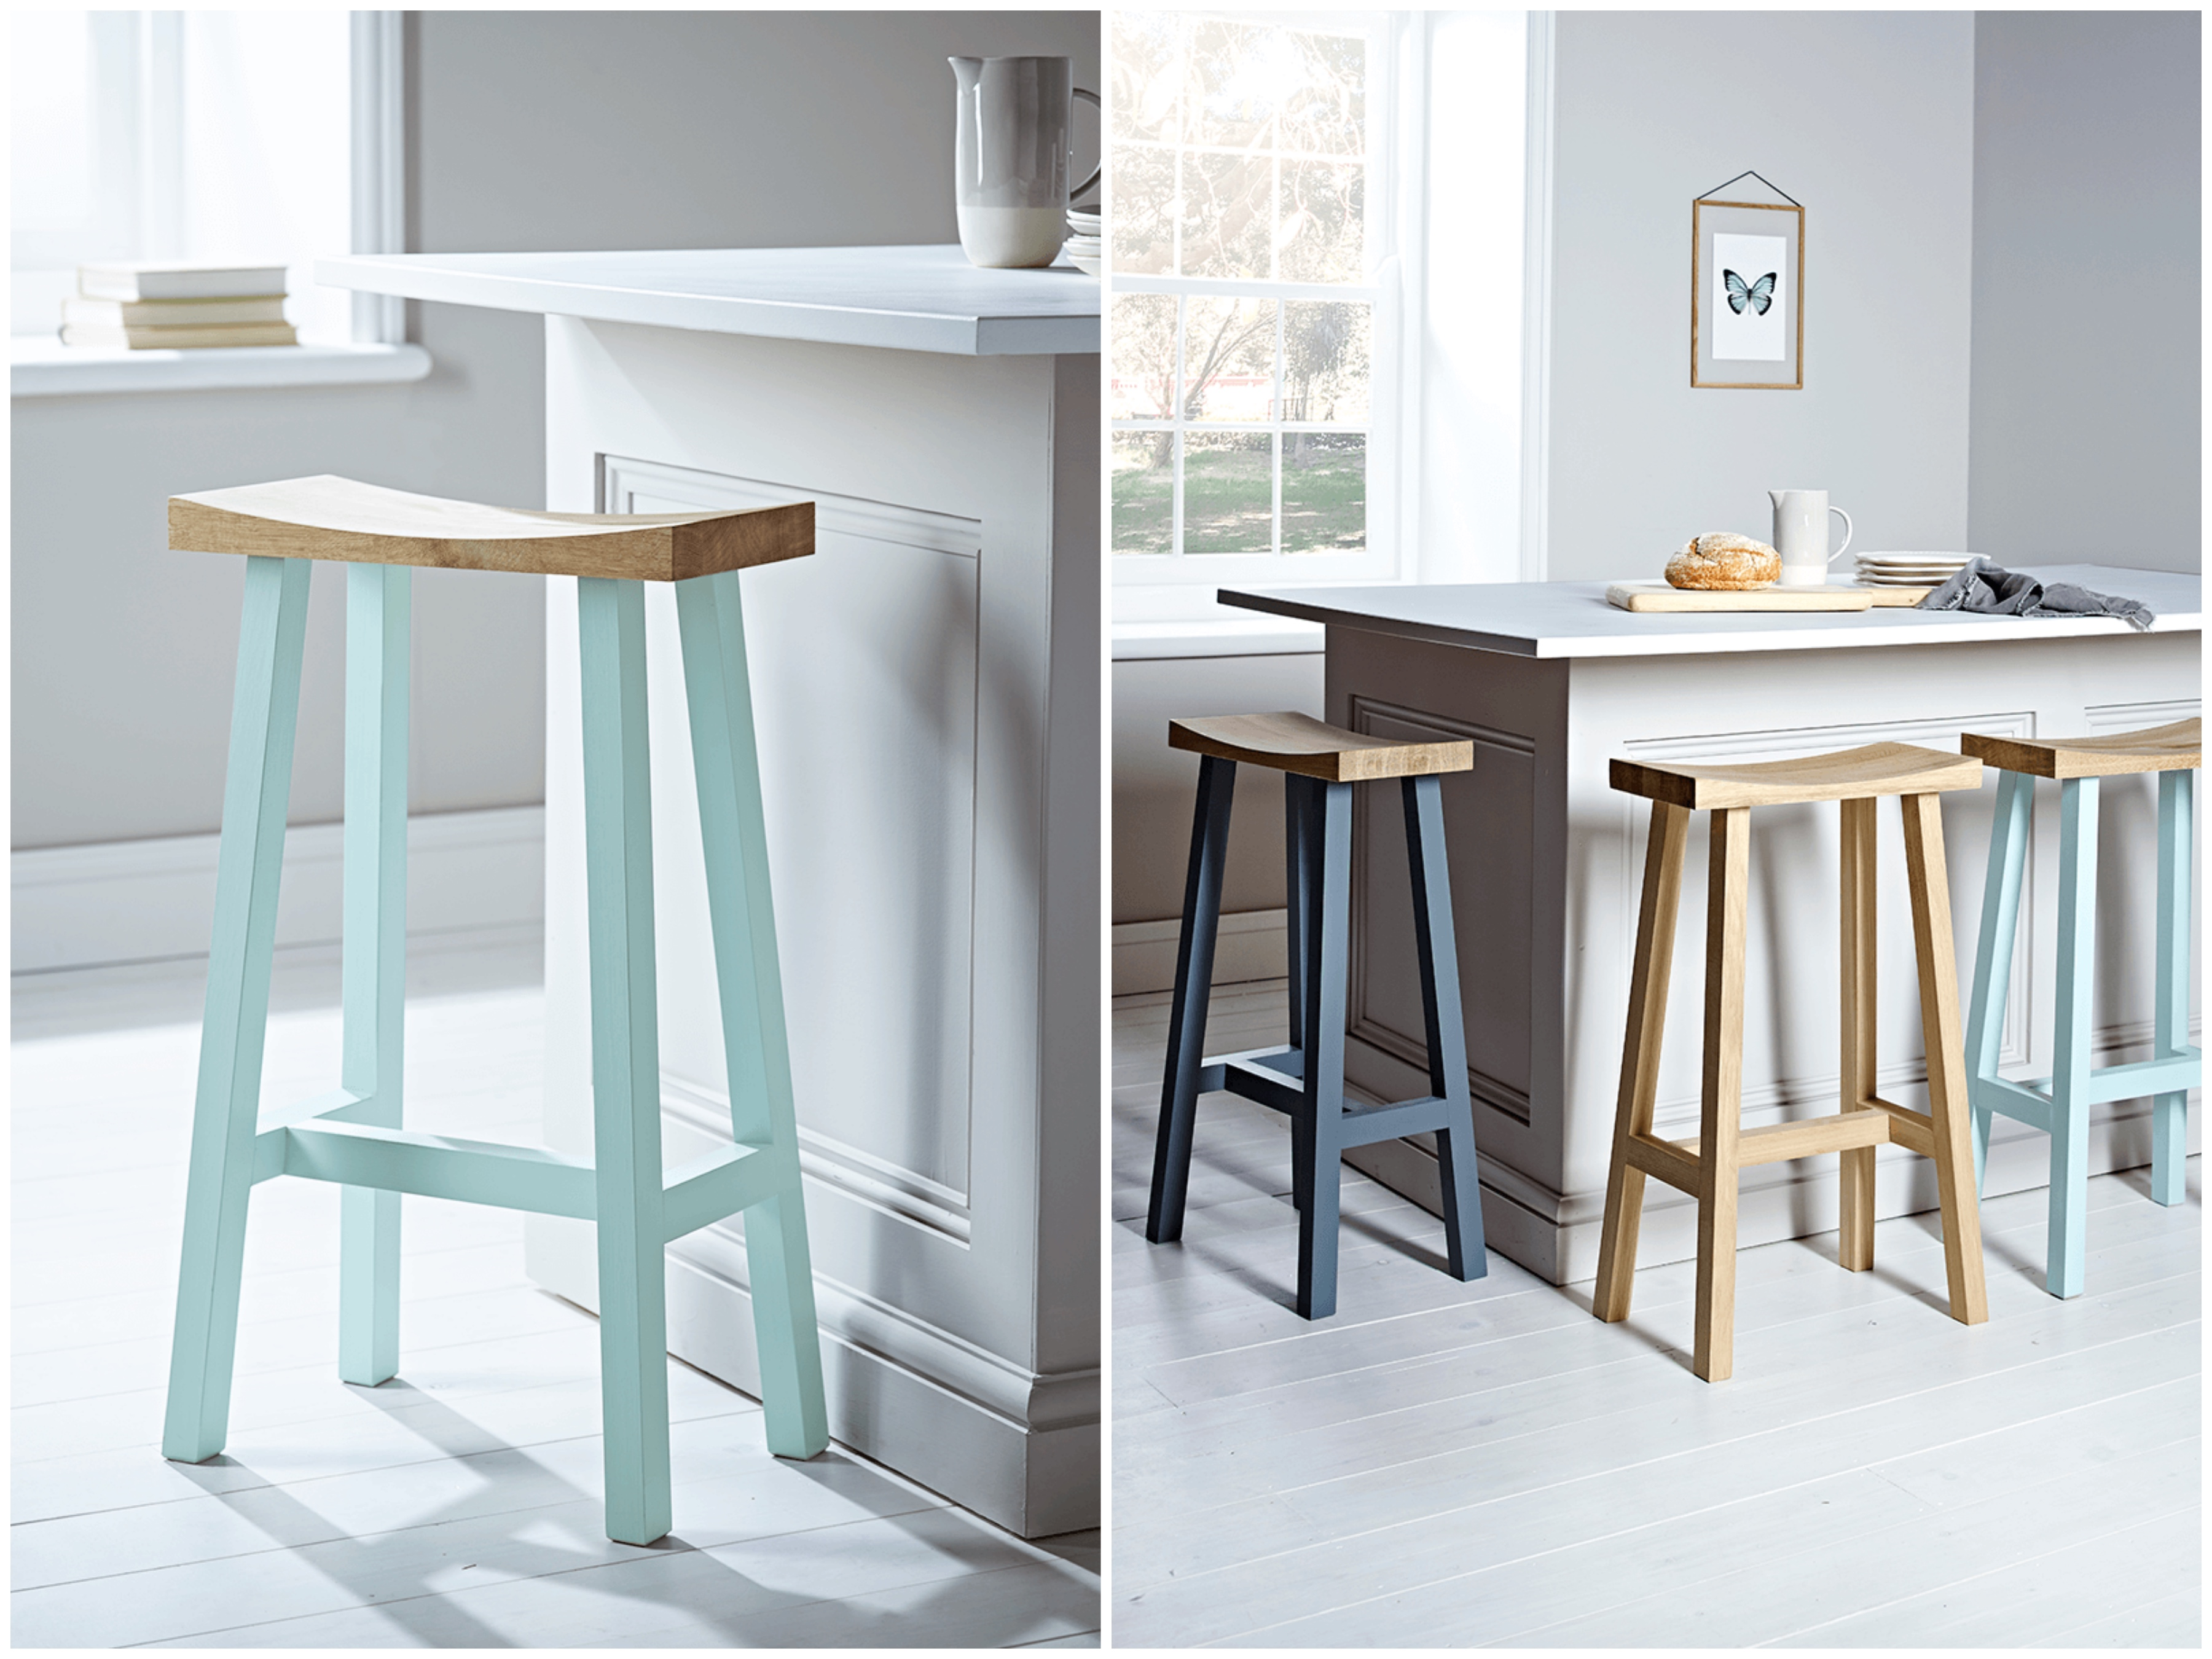 5 Of Our Favourite Bar Stools The Main Company